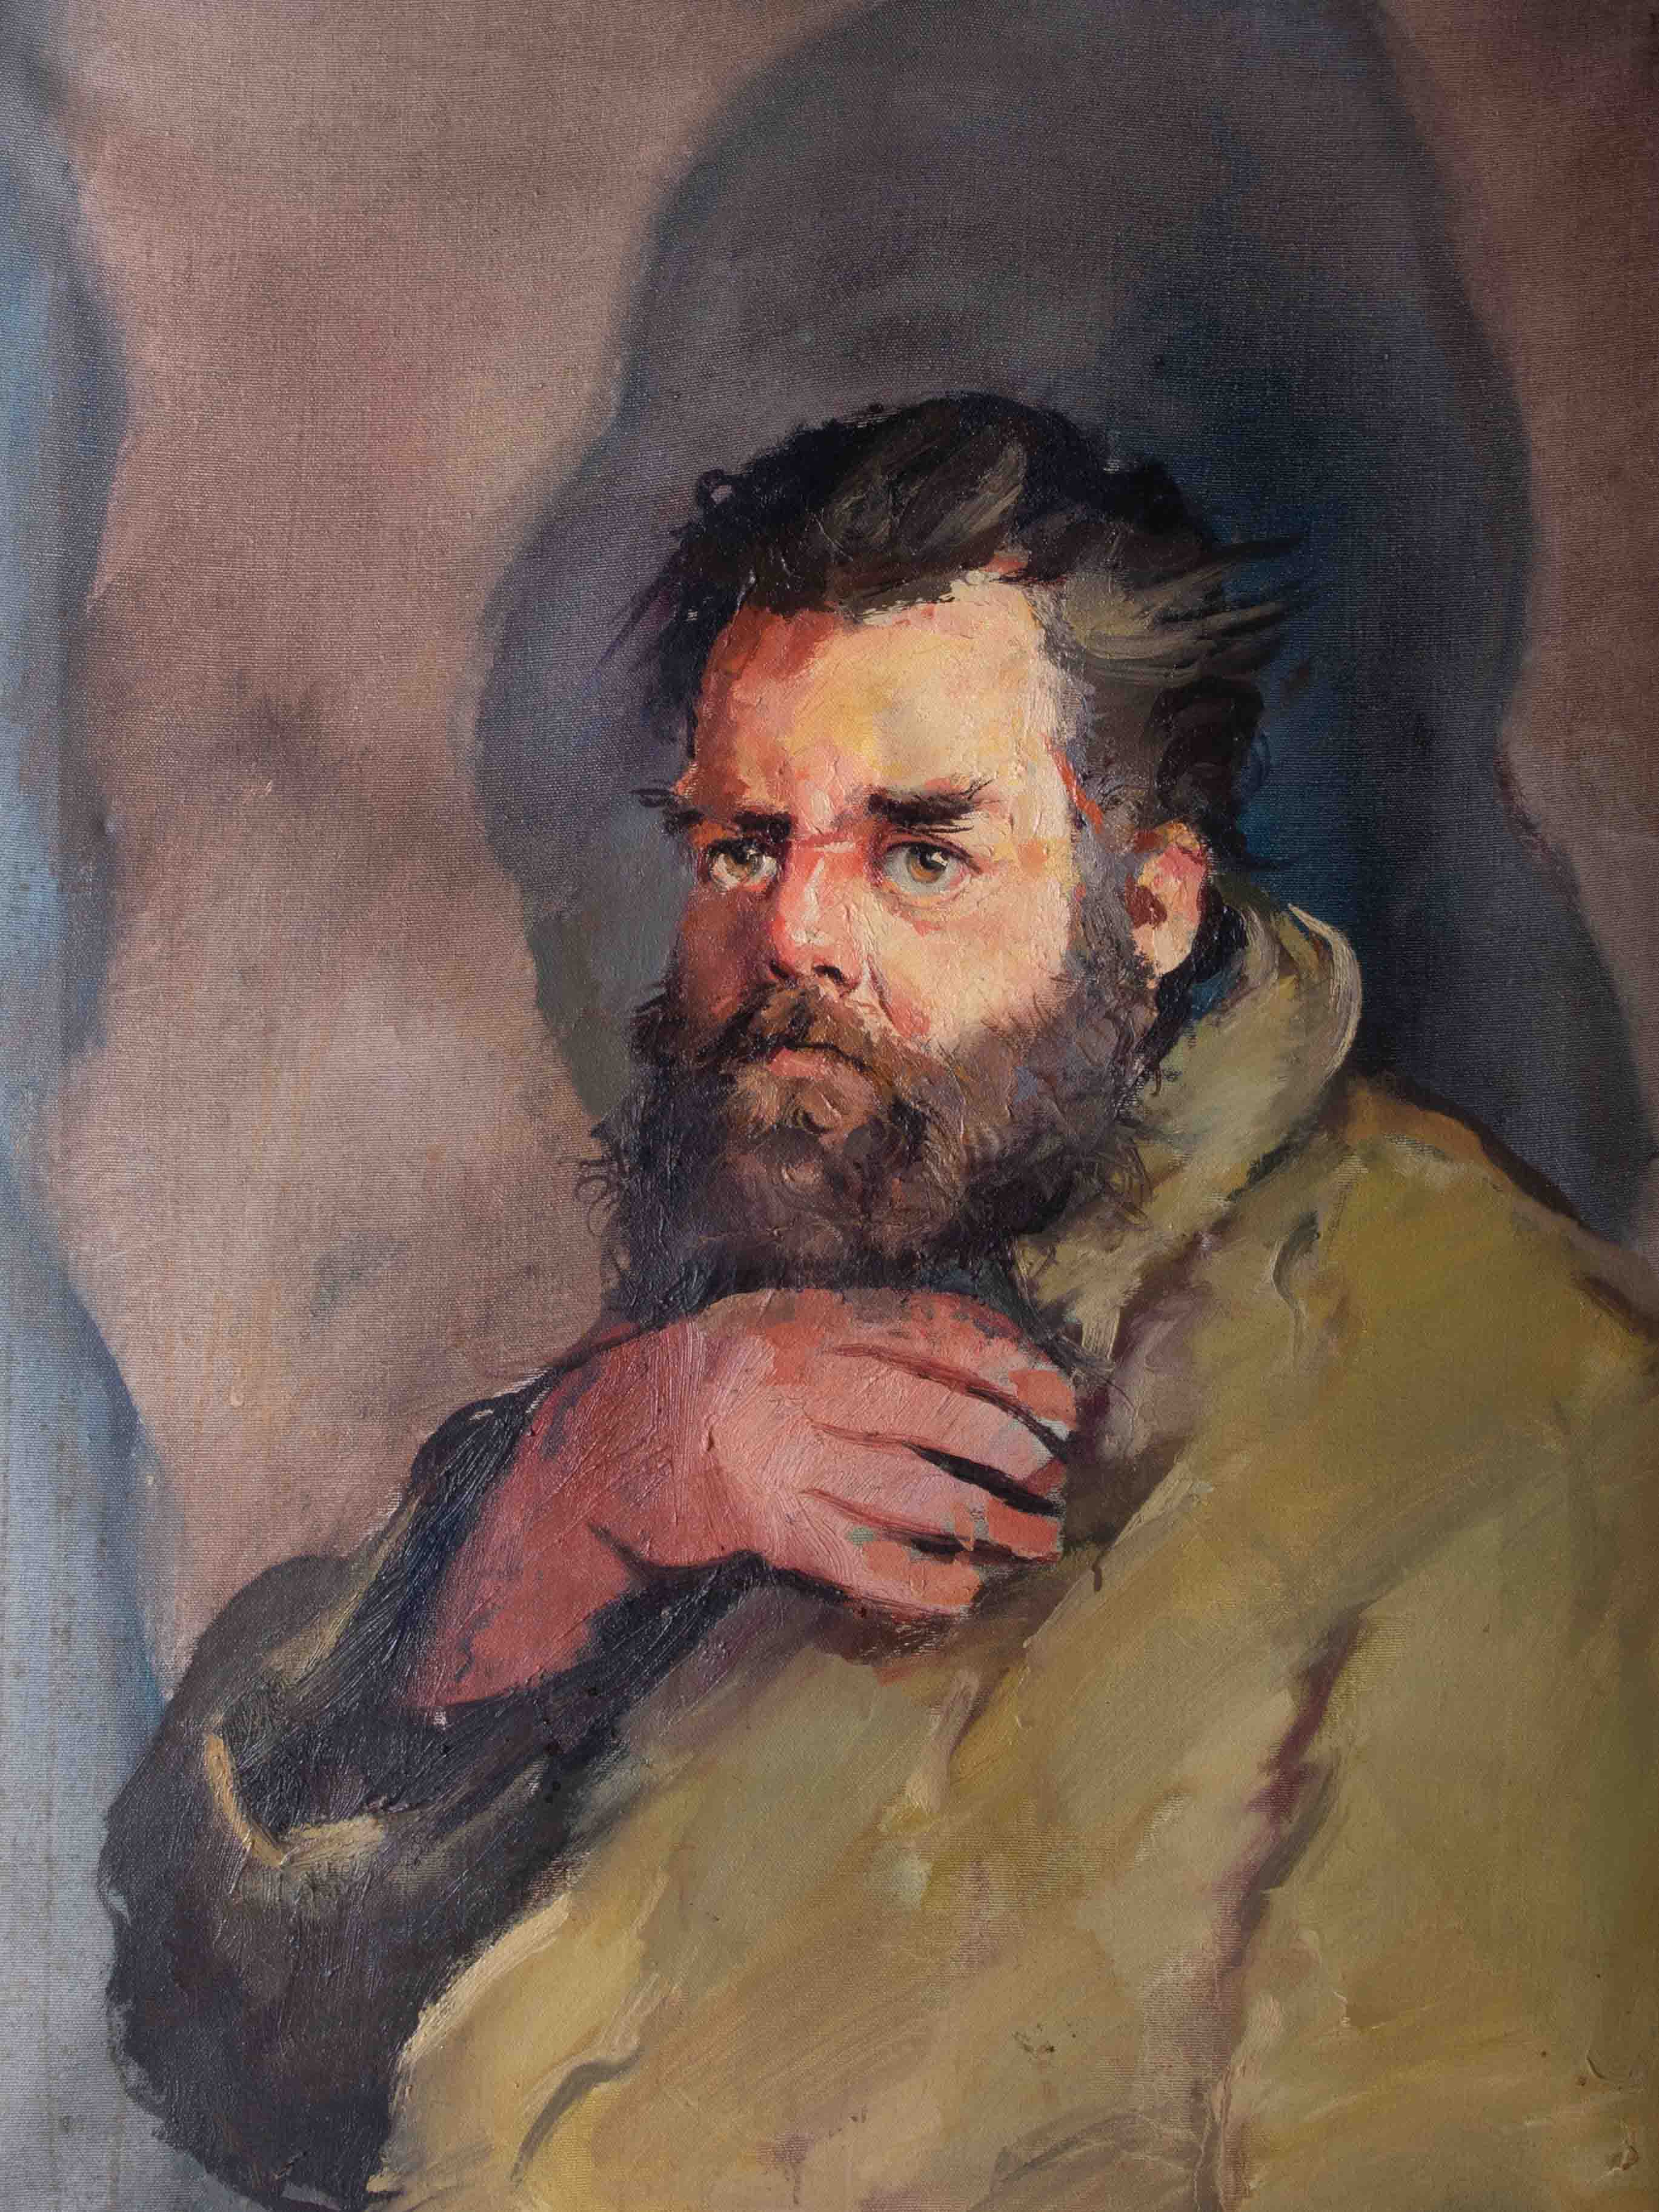 Robert Lenkiewicz (1941-2002) 'Big Pete' oil on canvas, with original artists title label on - Image 2 of 4